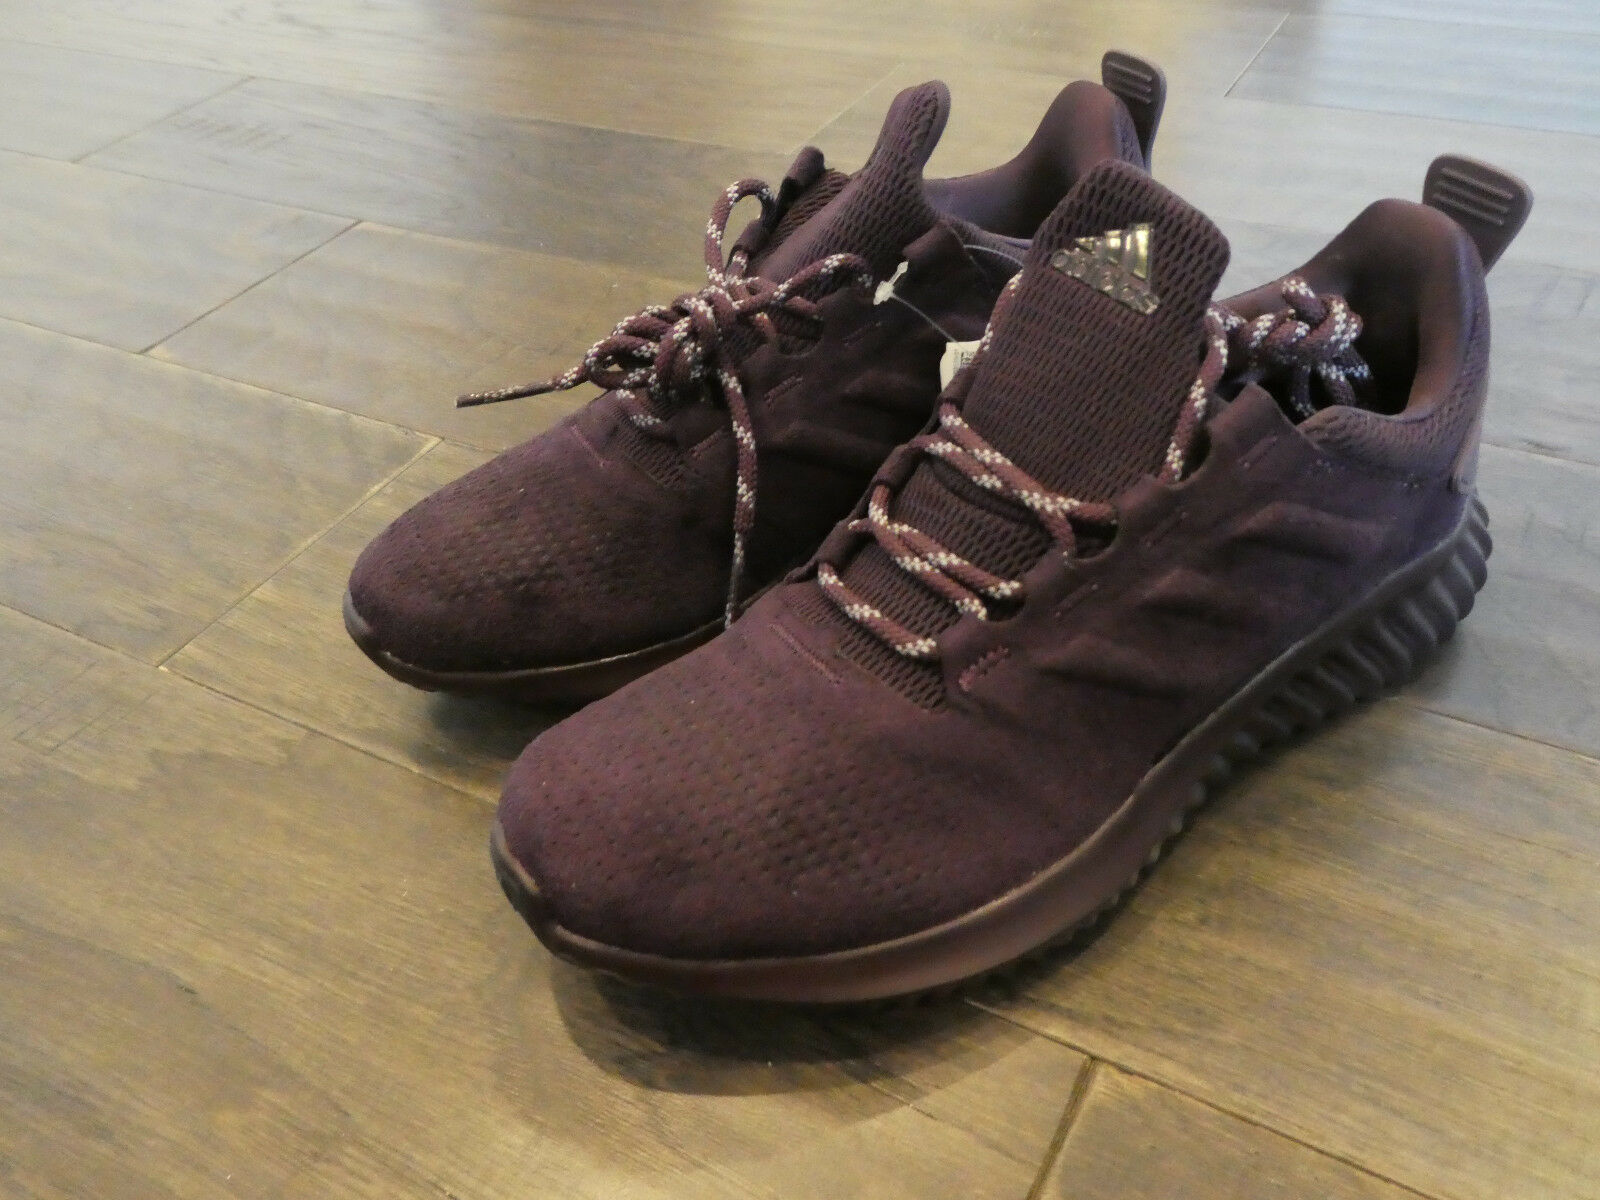 Adidas Adidas Adidas Womens Alphabounce CR w shoes sneakers new CG4675 c6cf16